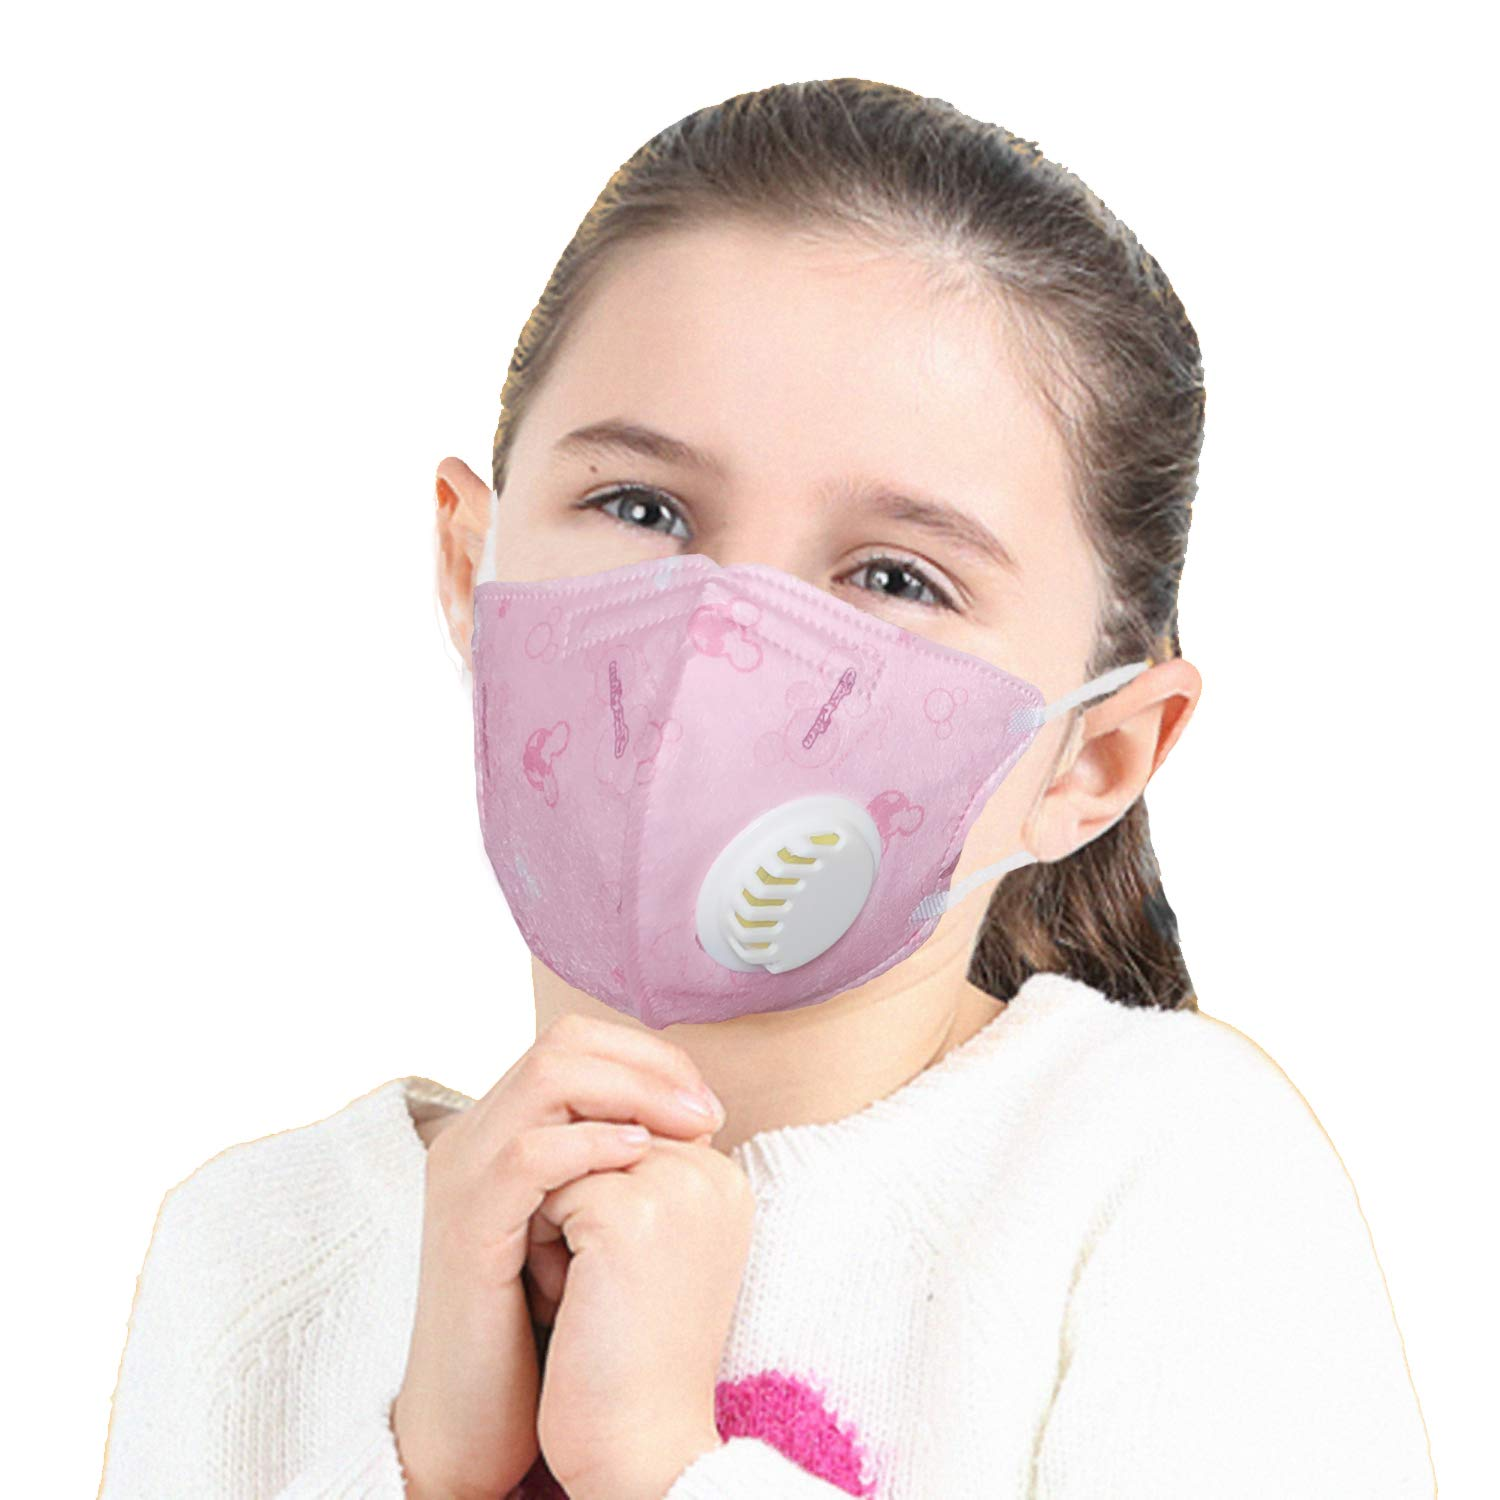 childs n95 mask